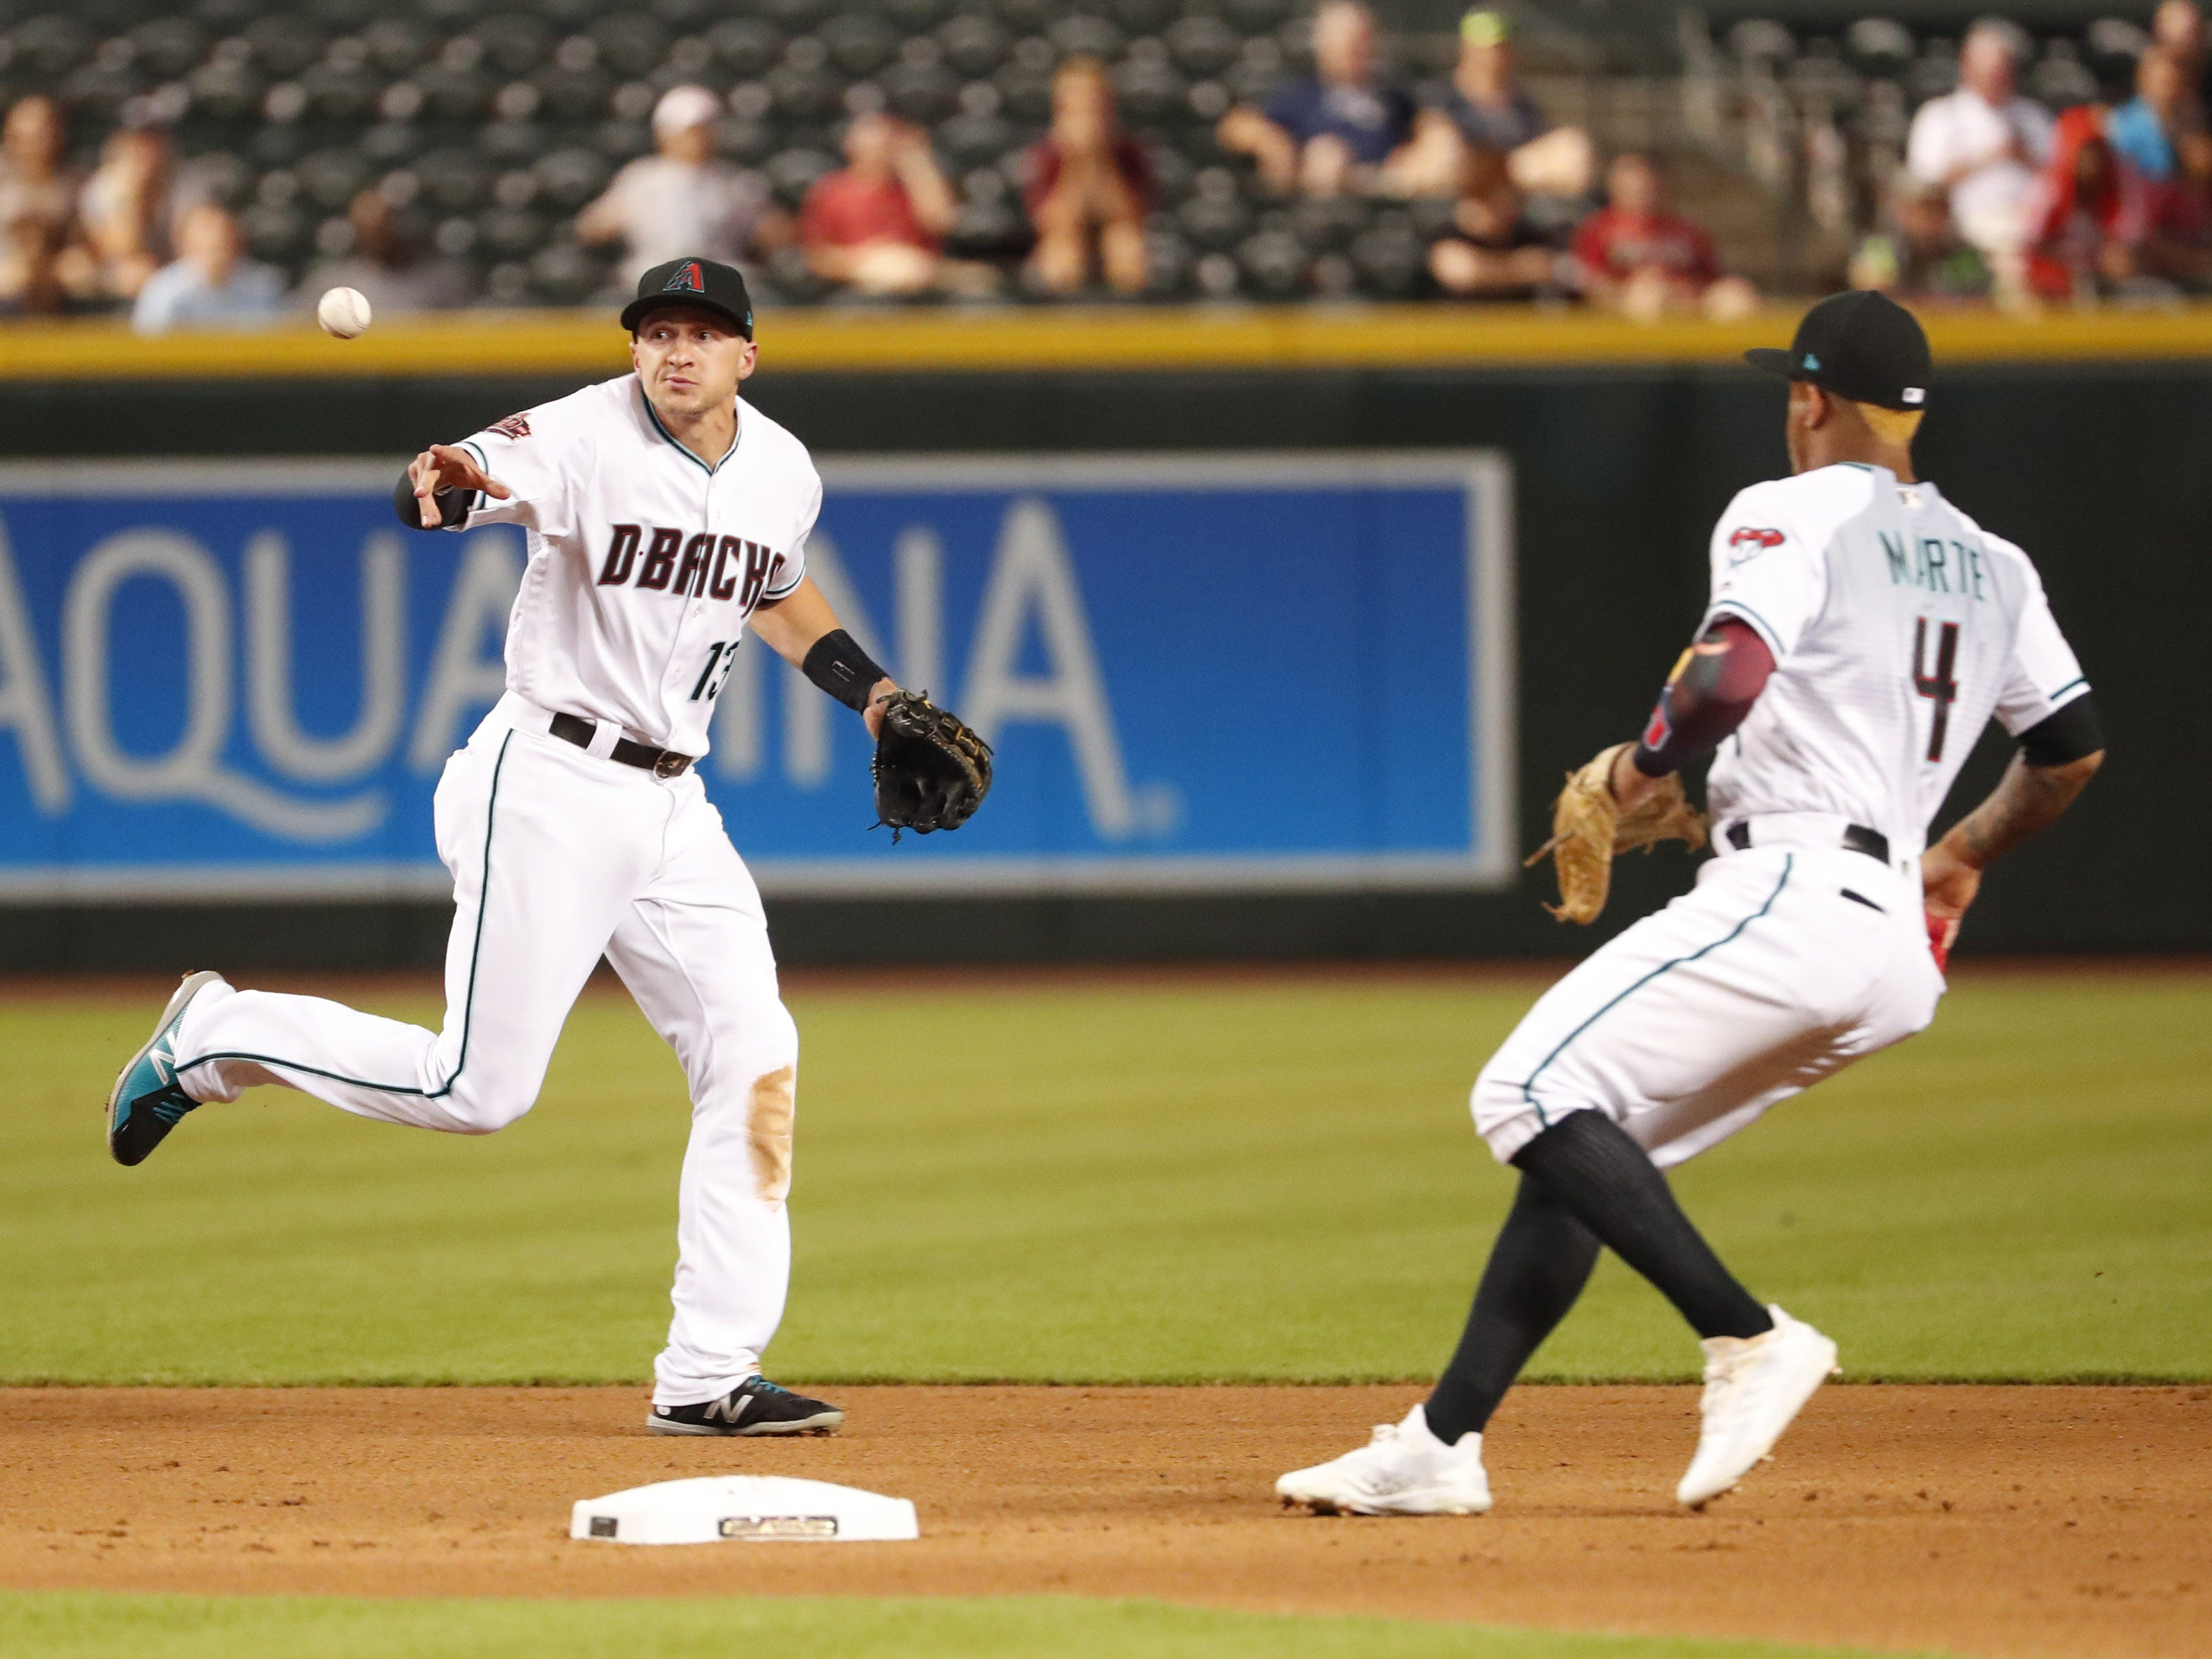 Arizona Diamondbacks shortstop Nick Ahmed (13) flips the ball to second baseman Ketel Marte (4) to start a double play against the San Diego Padres during the fifth inning at Chase Field in Phoenix, Ariz. September 4. 2018.